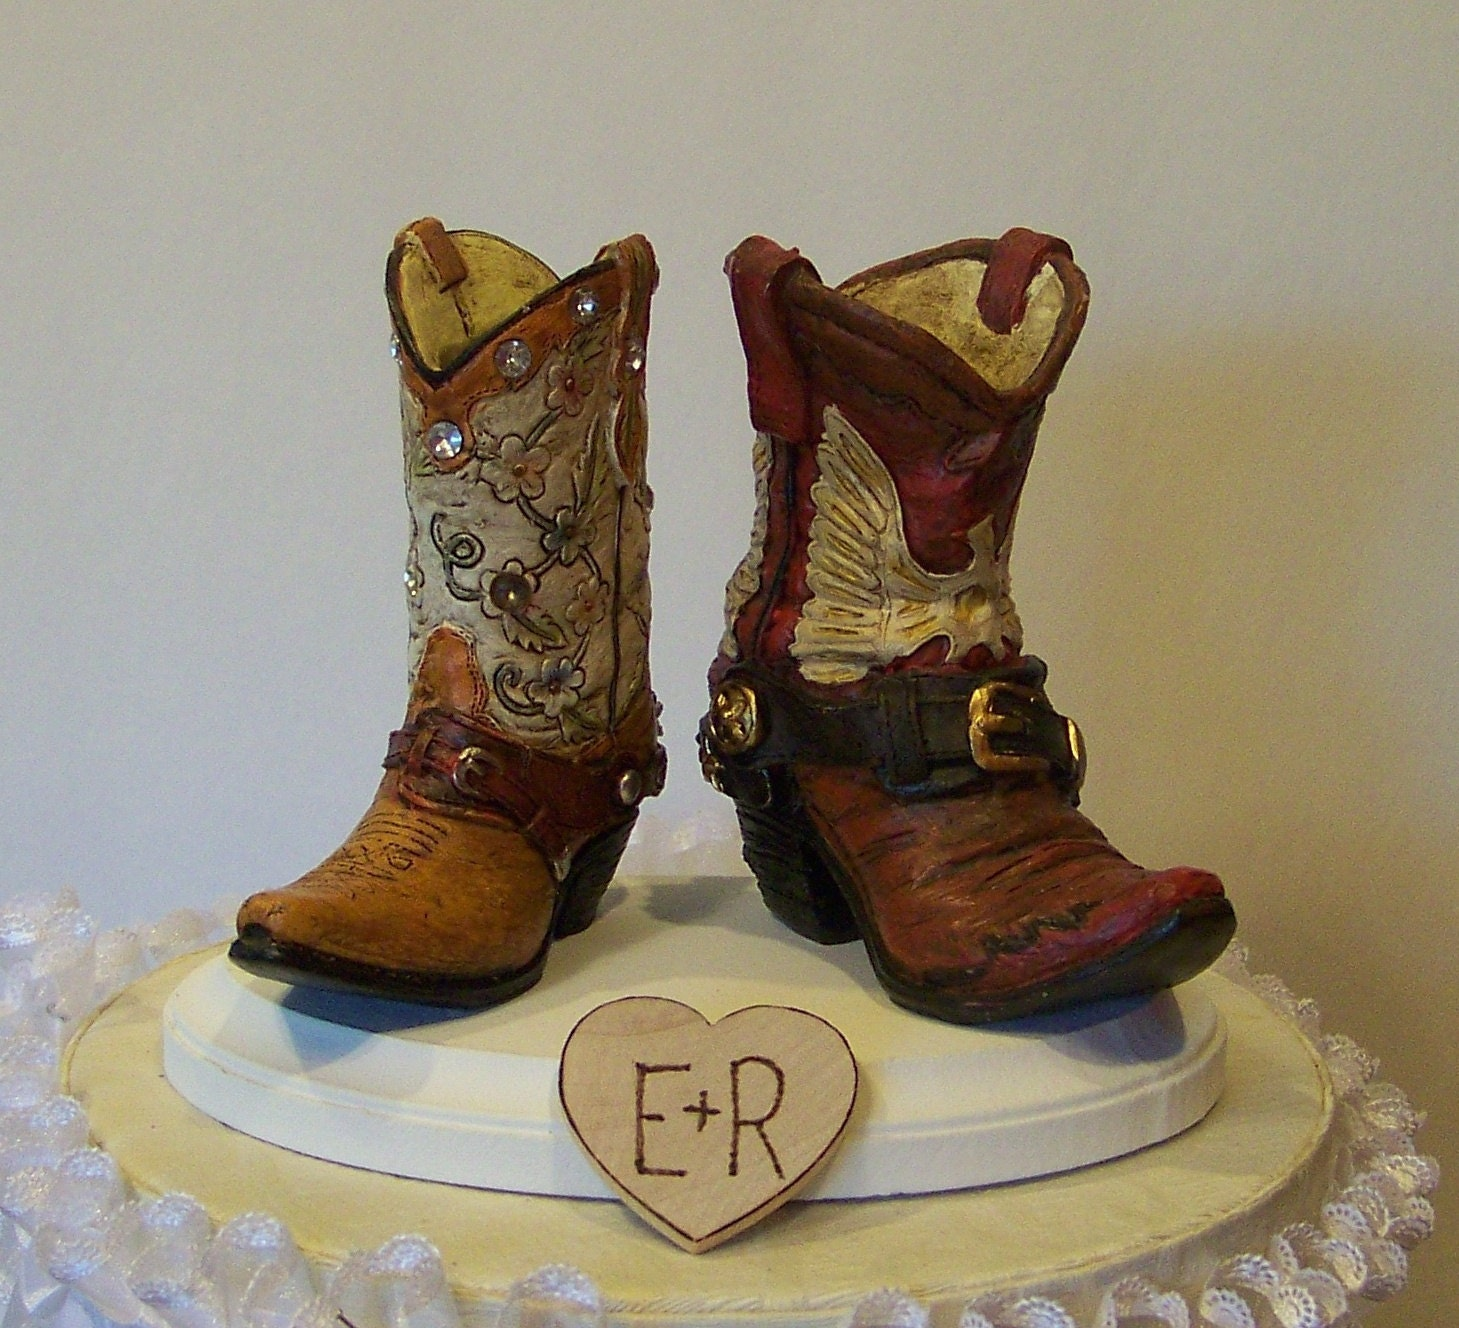 Bride In Boots Cake Topper